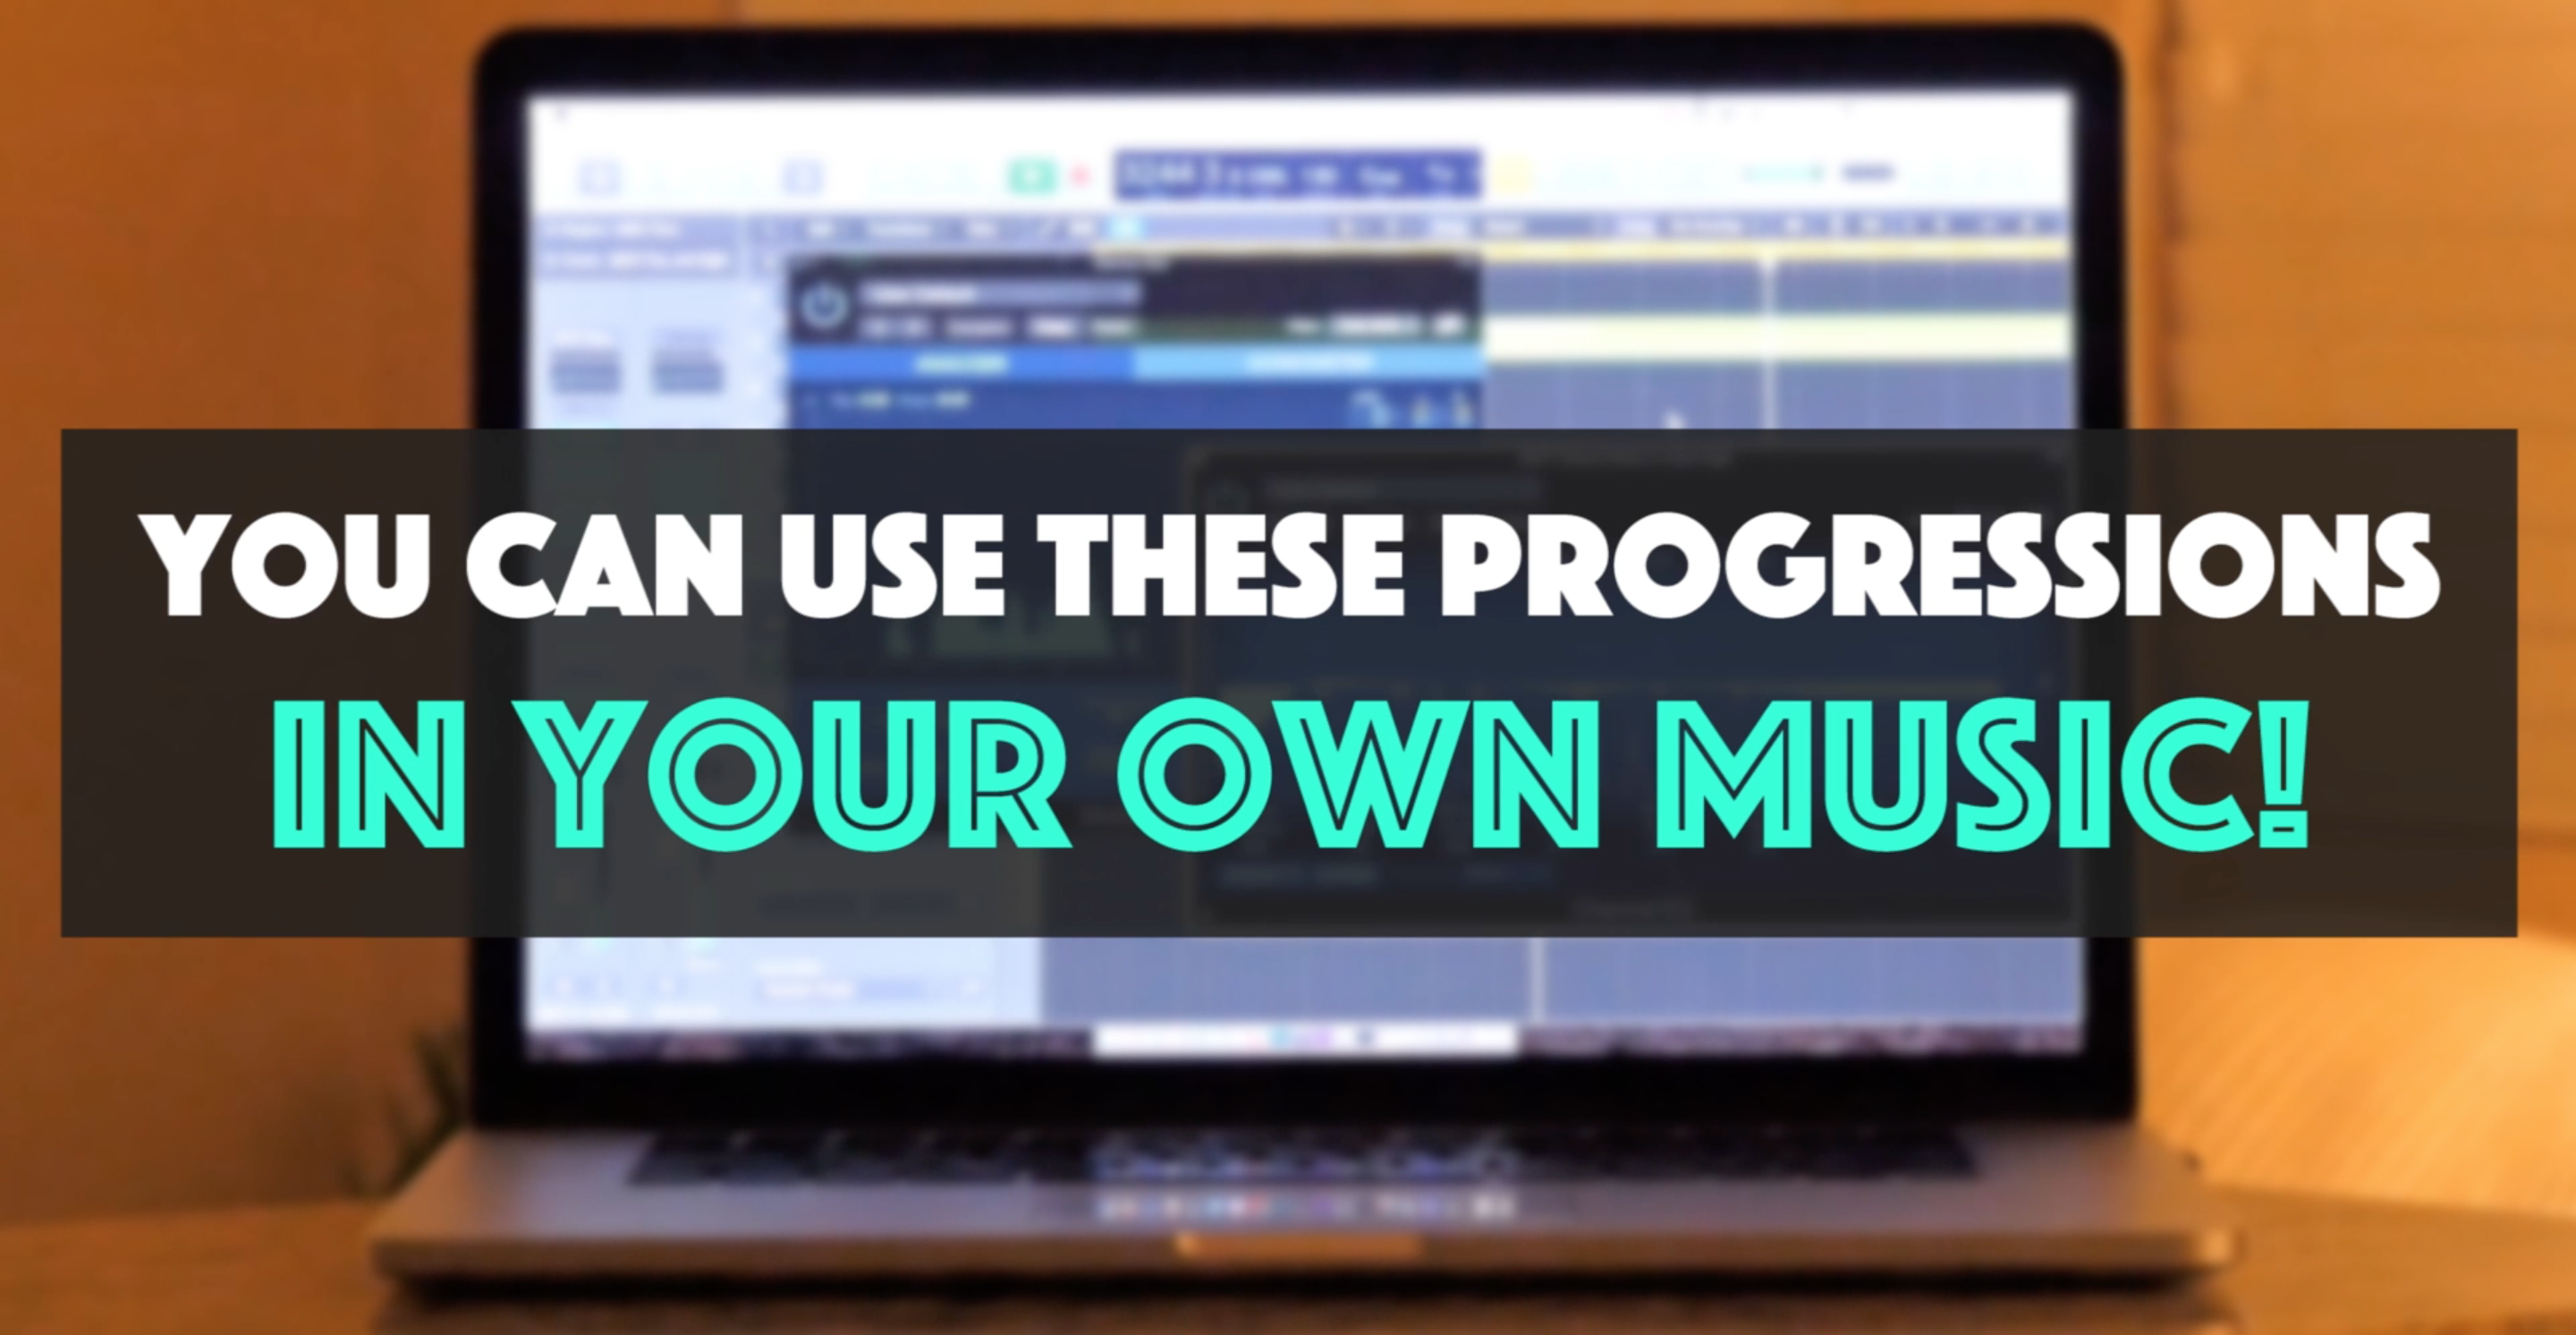 use in your own music